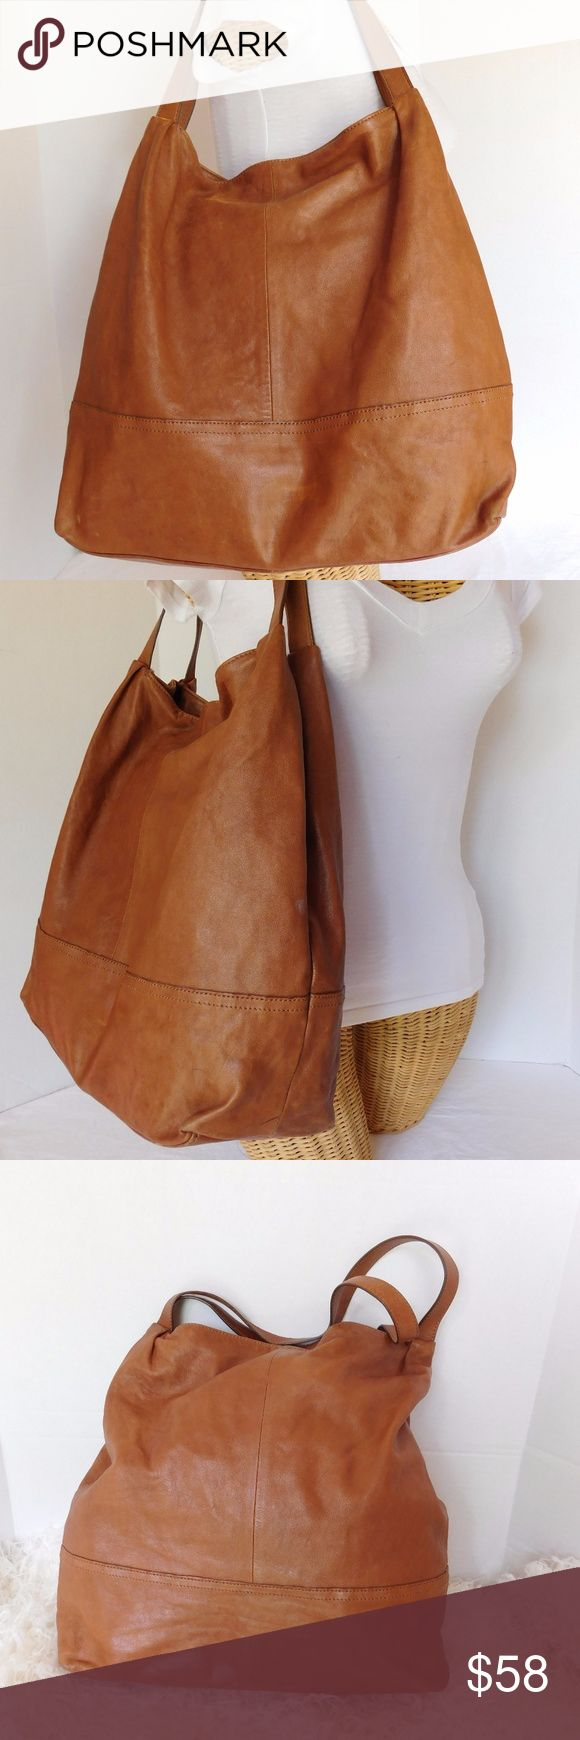 """BANANA REPUBLIC BROWN LARGE SOFT LEATHER TOTE BAG TITLE- BANANA REPUBLIC BROWN LARGE LEATHER TOTE BAG  BRAND- BANANA REPUBLIC  COLOR- BROWN   MATERIAL- SOFT LEATHER   STYLE- TOTE  SIZE- """"16 length, """"15 height, """"5.5 width, """"10 strap drop  FEATURES- 1 LARGE OPEN COMPARTMENT, 1 SLIP POCKET  CONDITION- PRE-OWNED GOOD, WORN LEATHER LOOK, LITE PEN MARK, RUBBED BOTTOM CORNERS.  Bin- PB18 Banana Republic Bags Totes"""